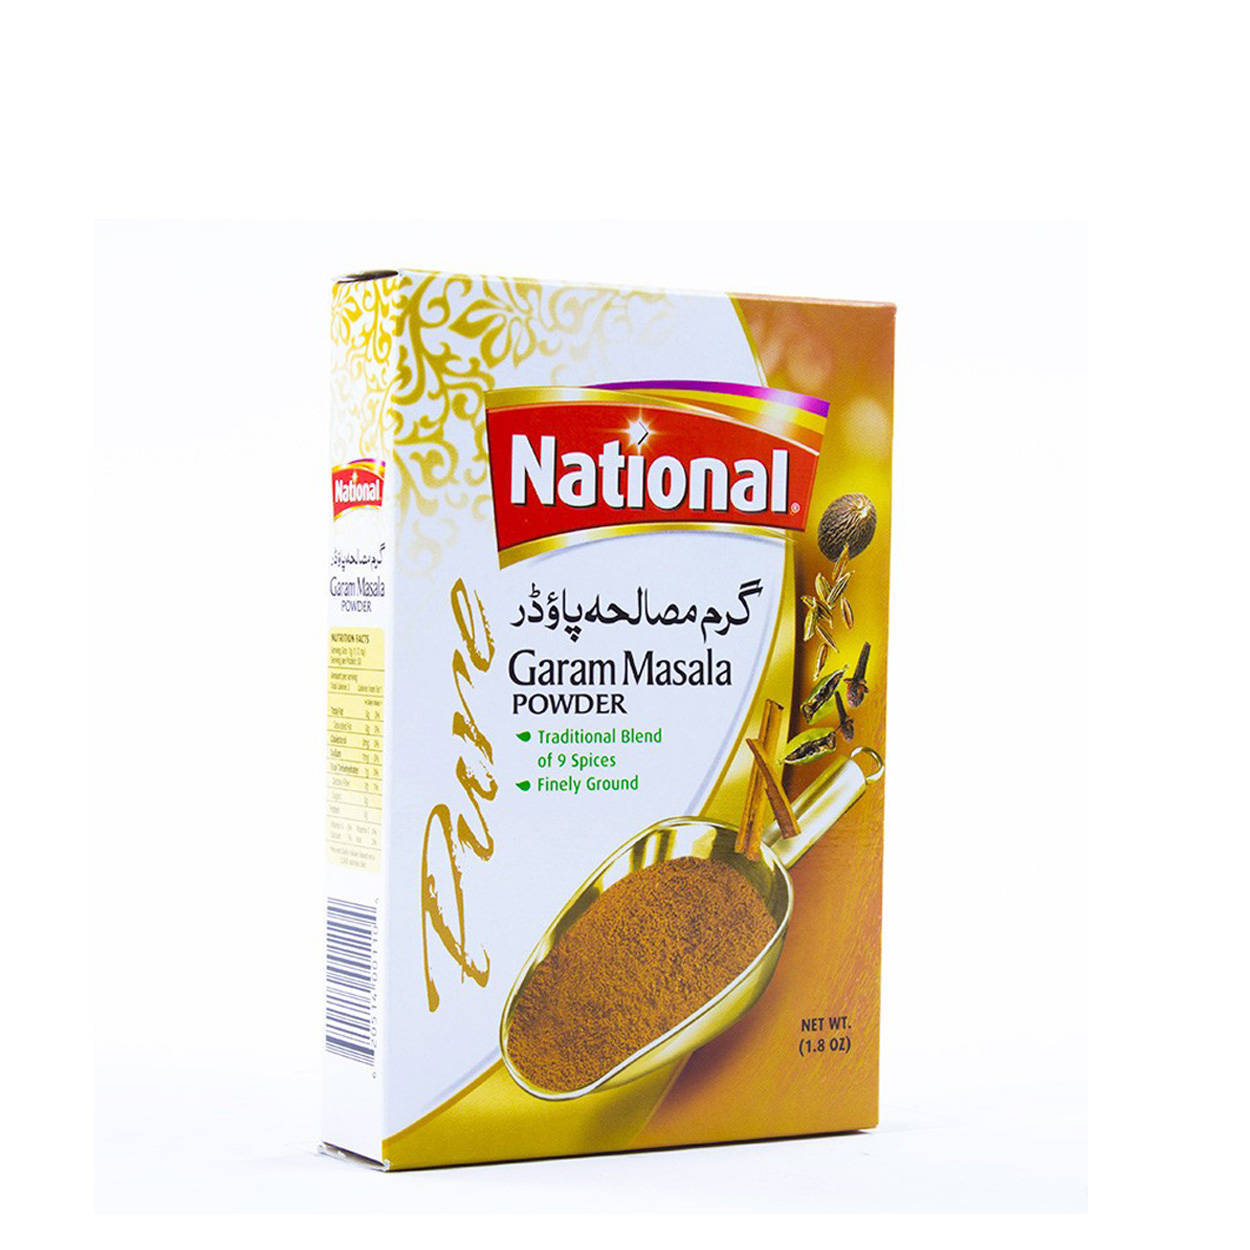 National Garam Masala Powder Spices 25gm